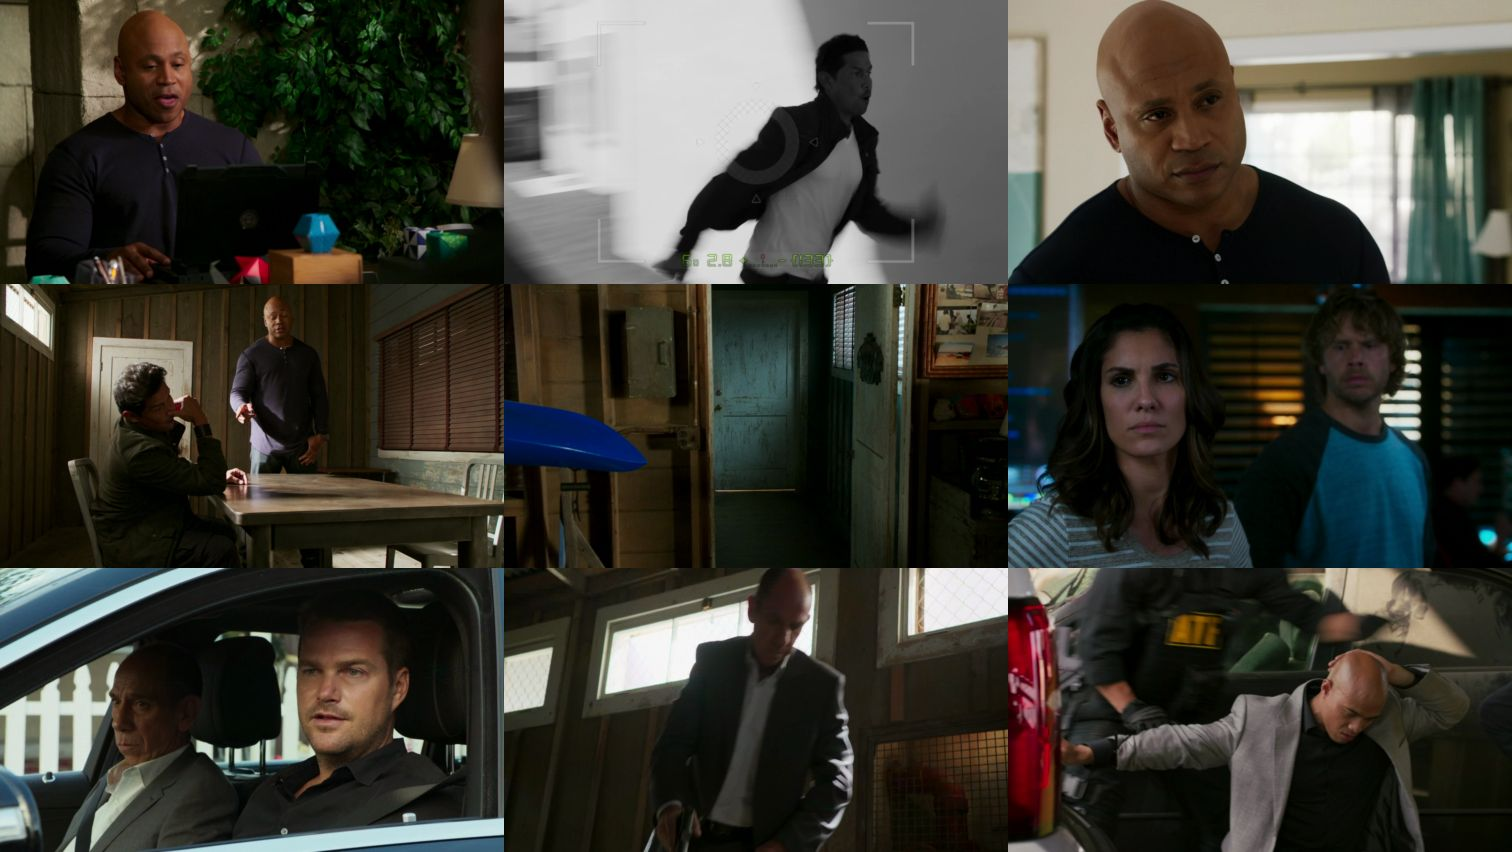 NCIS Los Angeles S07E06 720p HDTV X264-DIMENSION